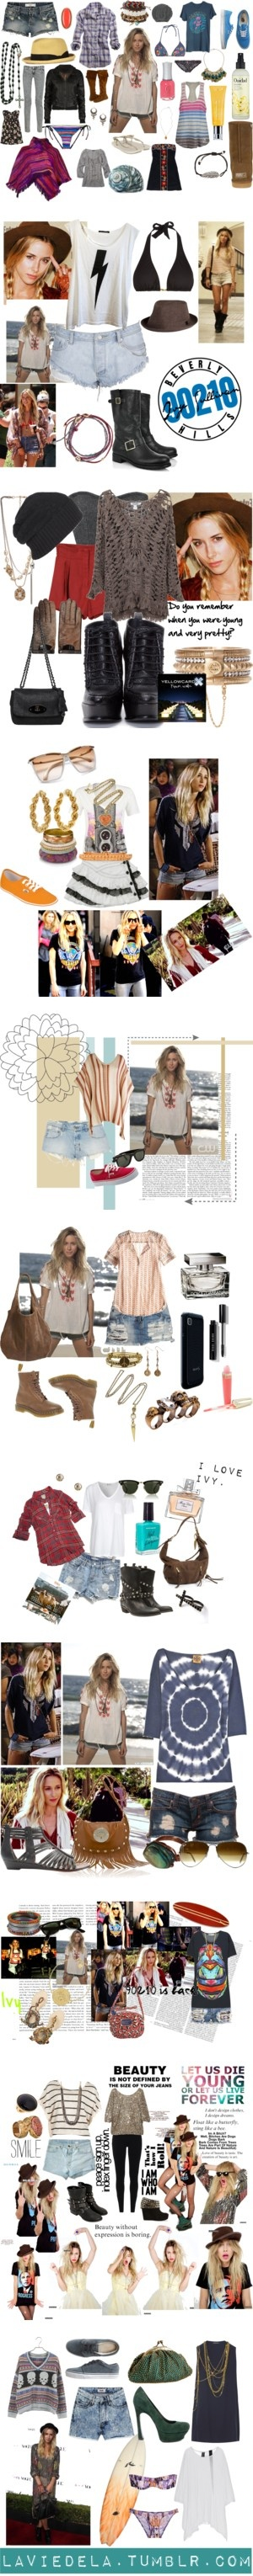 """Ivy Sullivan (90210)"" by rosabette ❤ liked on Polyvore"